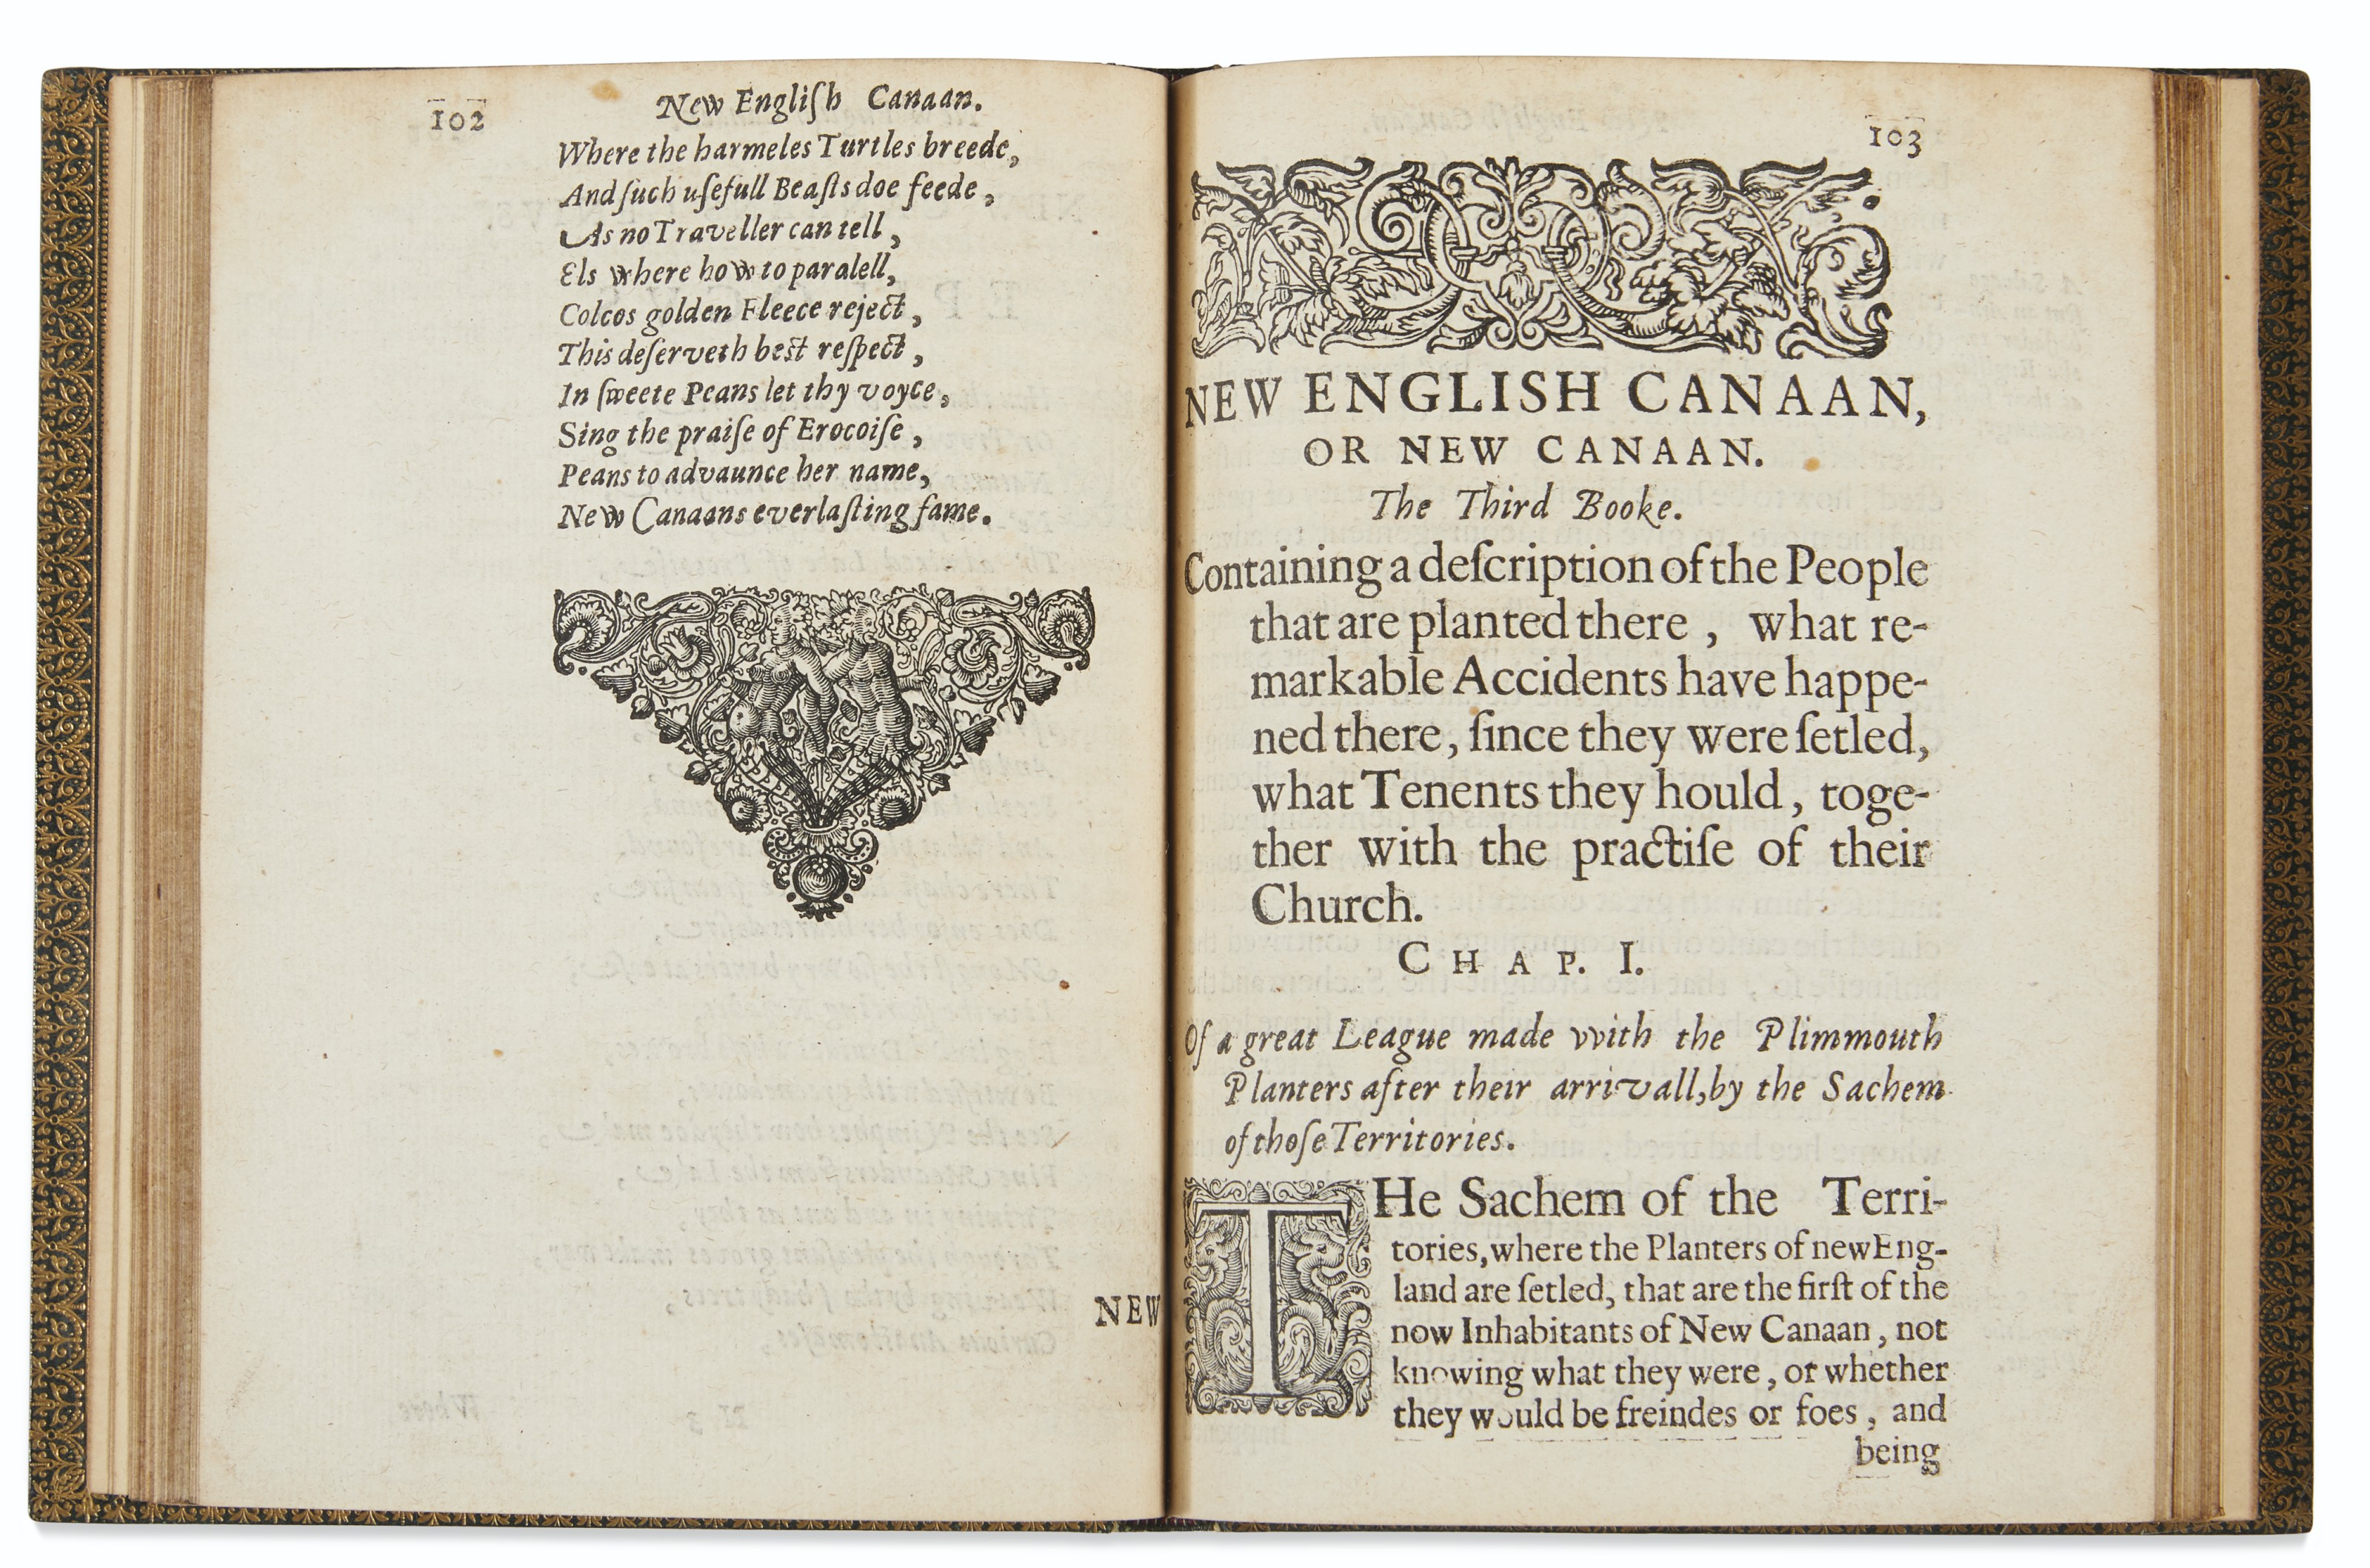 America's first banned book, lampooning the Puritans